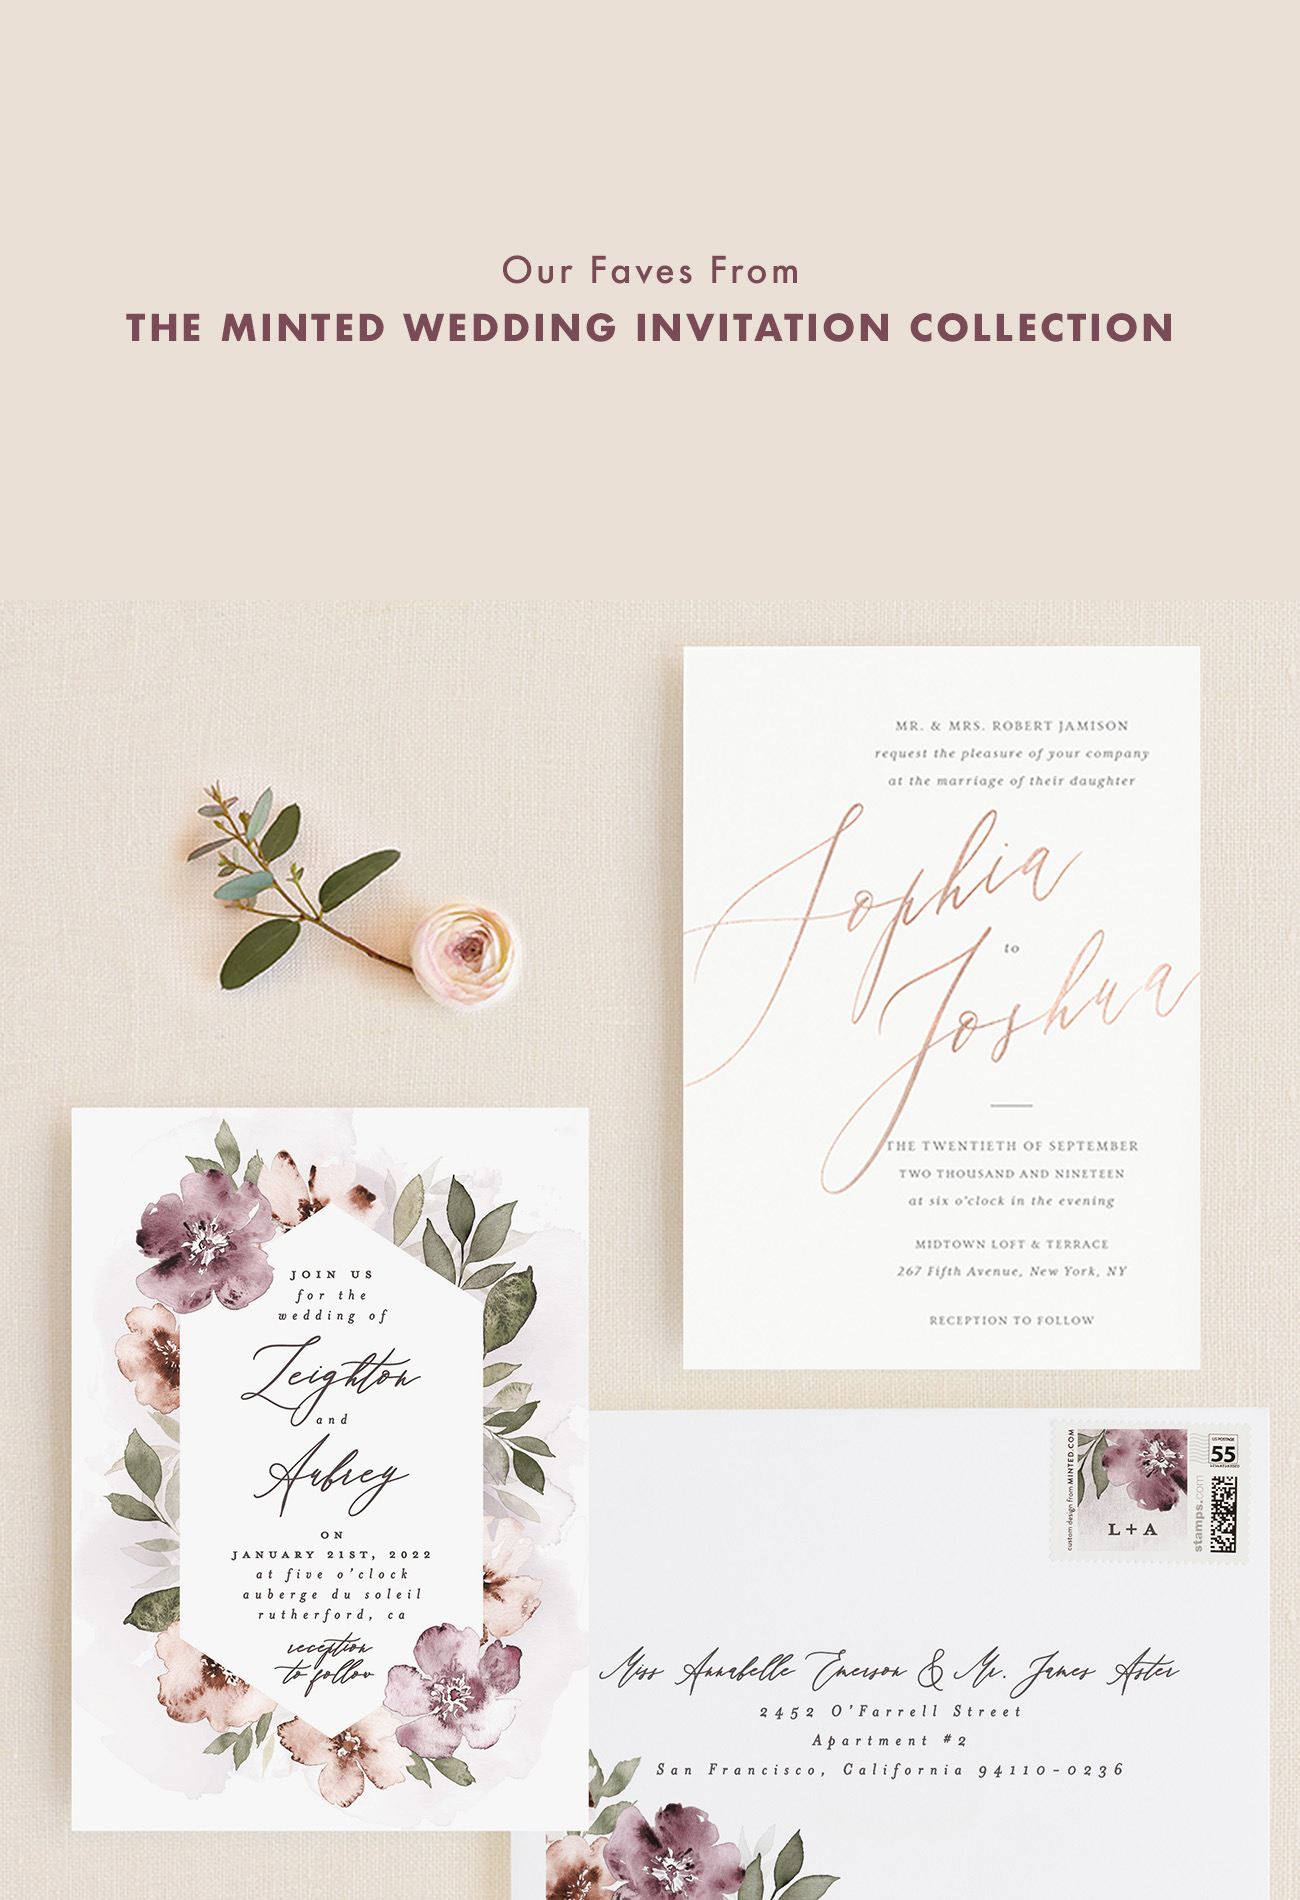 Fancifully Floral Wedding Invitations by Minted